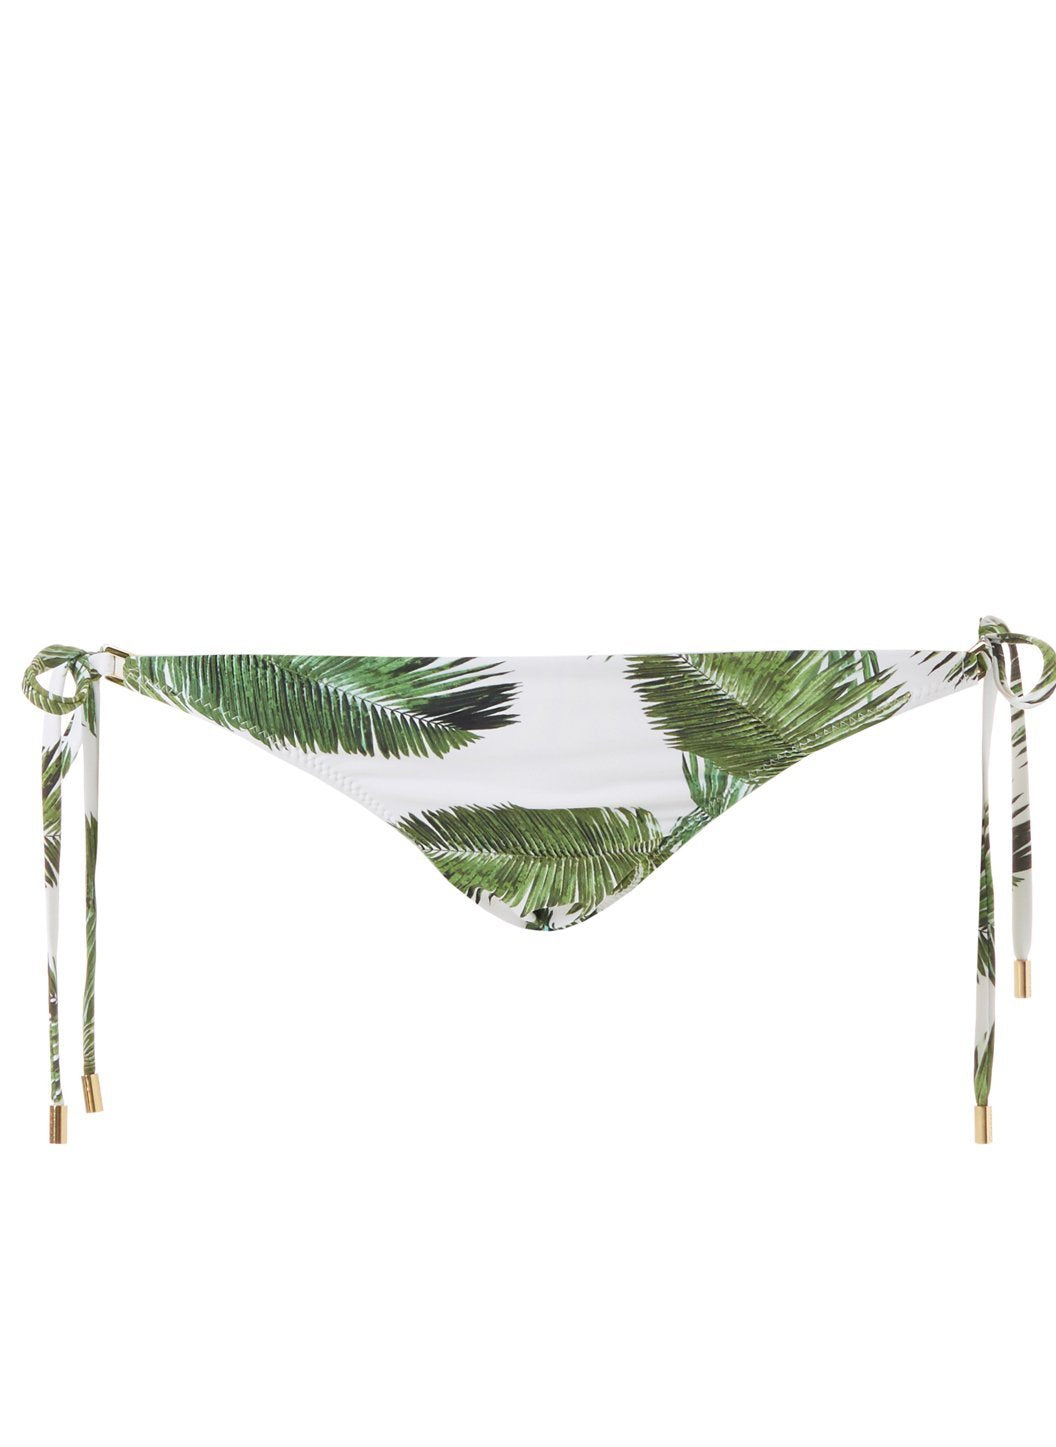 cancun white palm bikini bottom